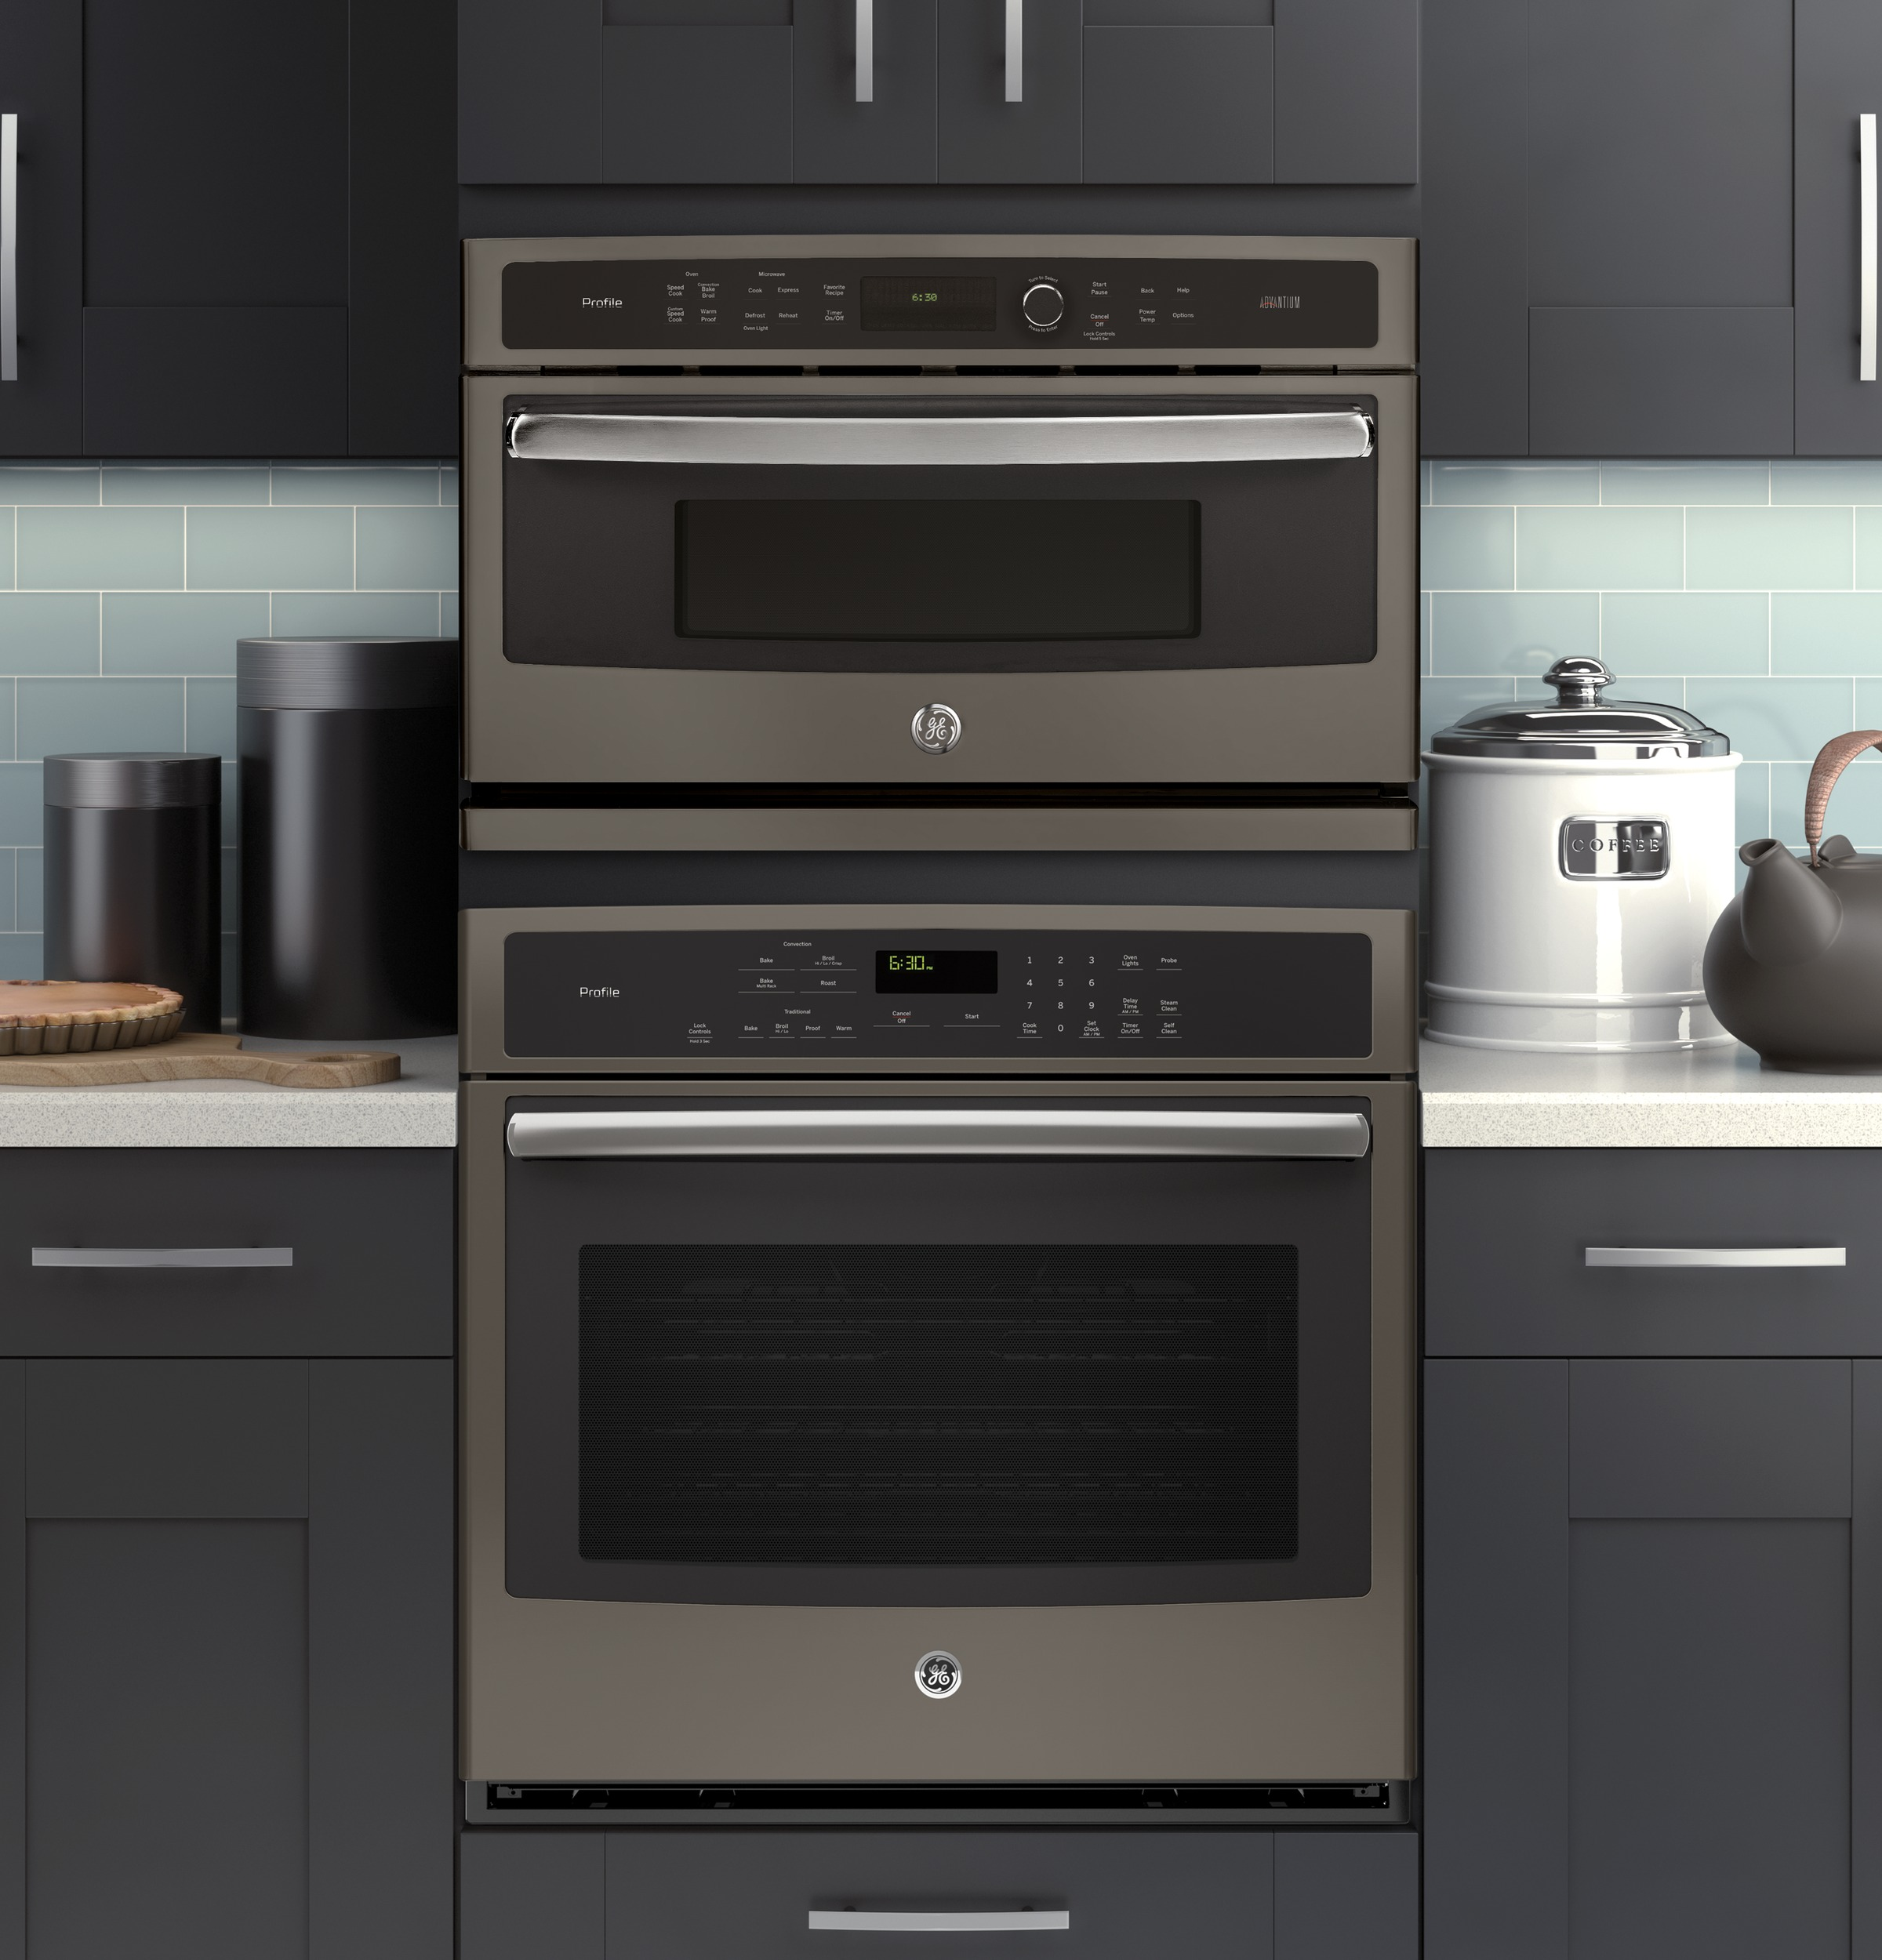 Model: PSB9240EFES | GE Profile GE Profile™ 30 in. Single Wall Oven with Advantium® Technology